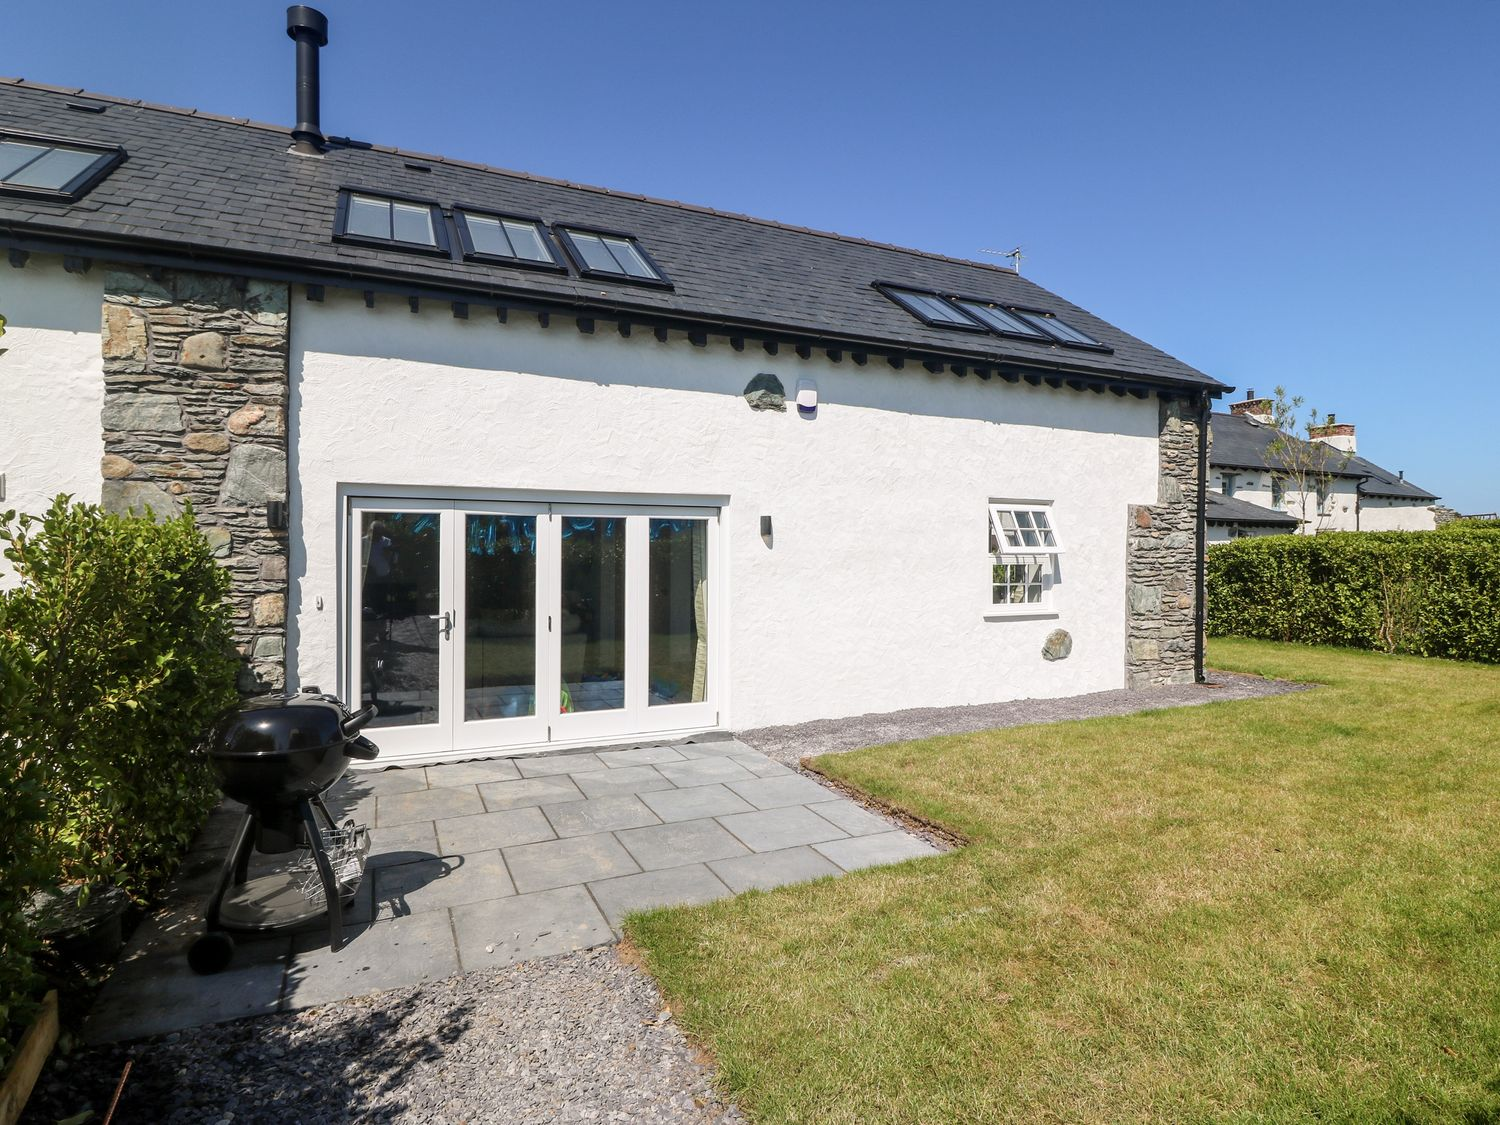 5 Cleifiog Fawr - Anglesey - 1070972 - photo 1